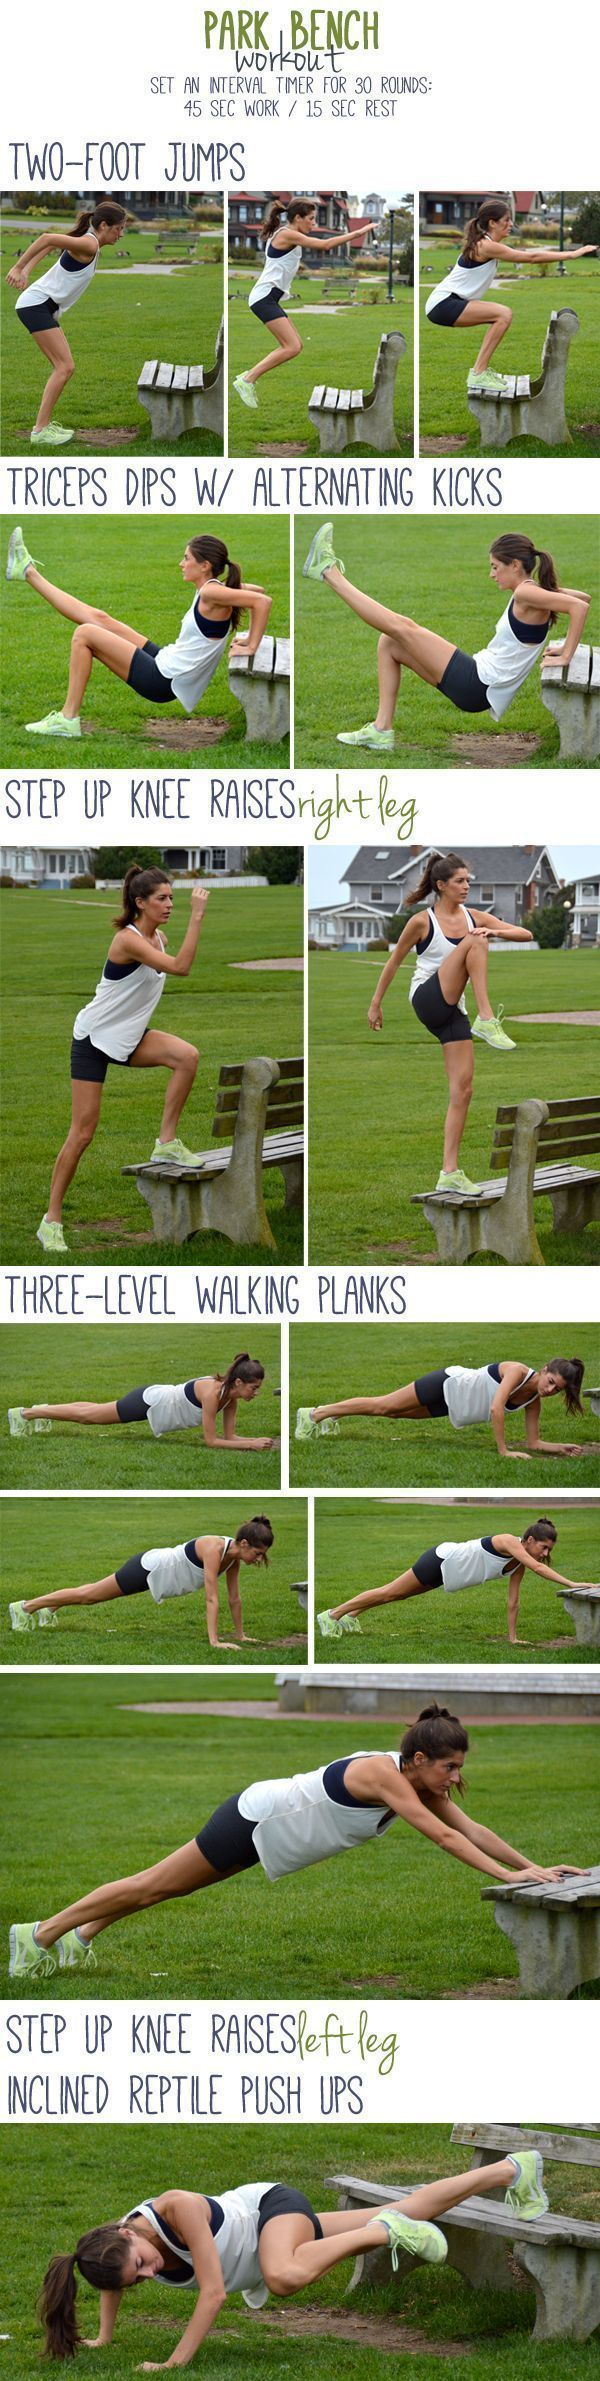 80 best Working Out Outdoors images on Pinterest | Health fitness ...